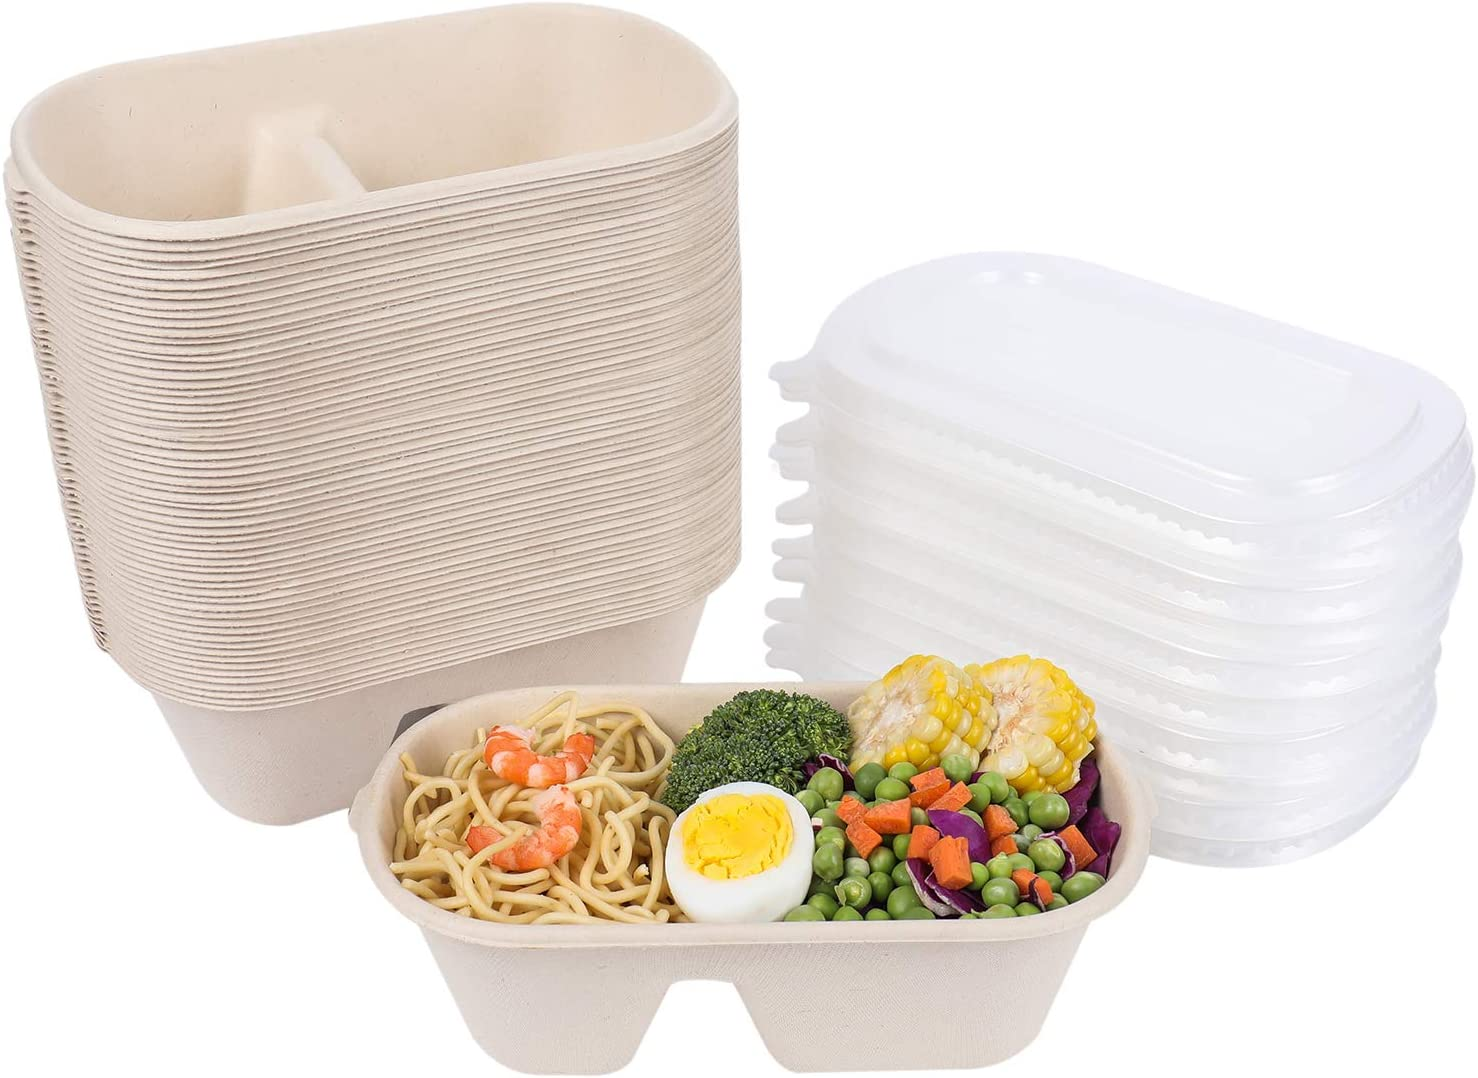 JAYEEY 23OZ Disposable bowls WITH PP LIDS, 2 compartment Compostable Fiber Food Container, Food Storage, Biodegradable Bagasse Microwave Safe 50 PACK